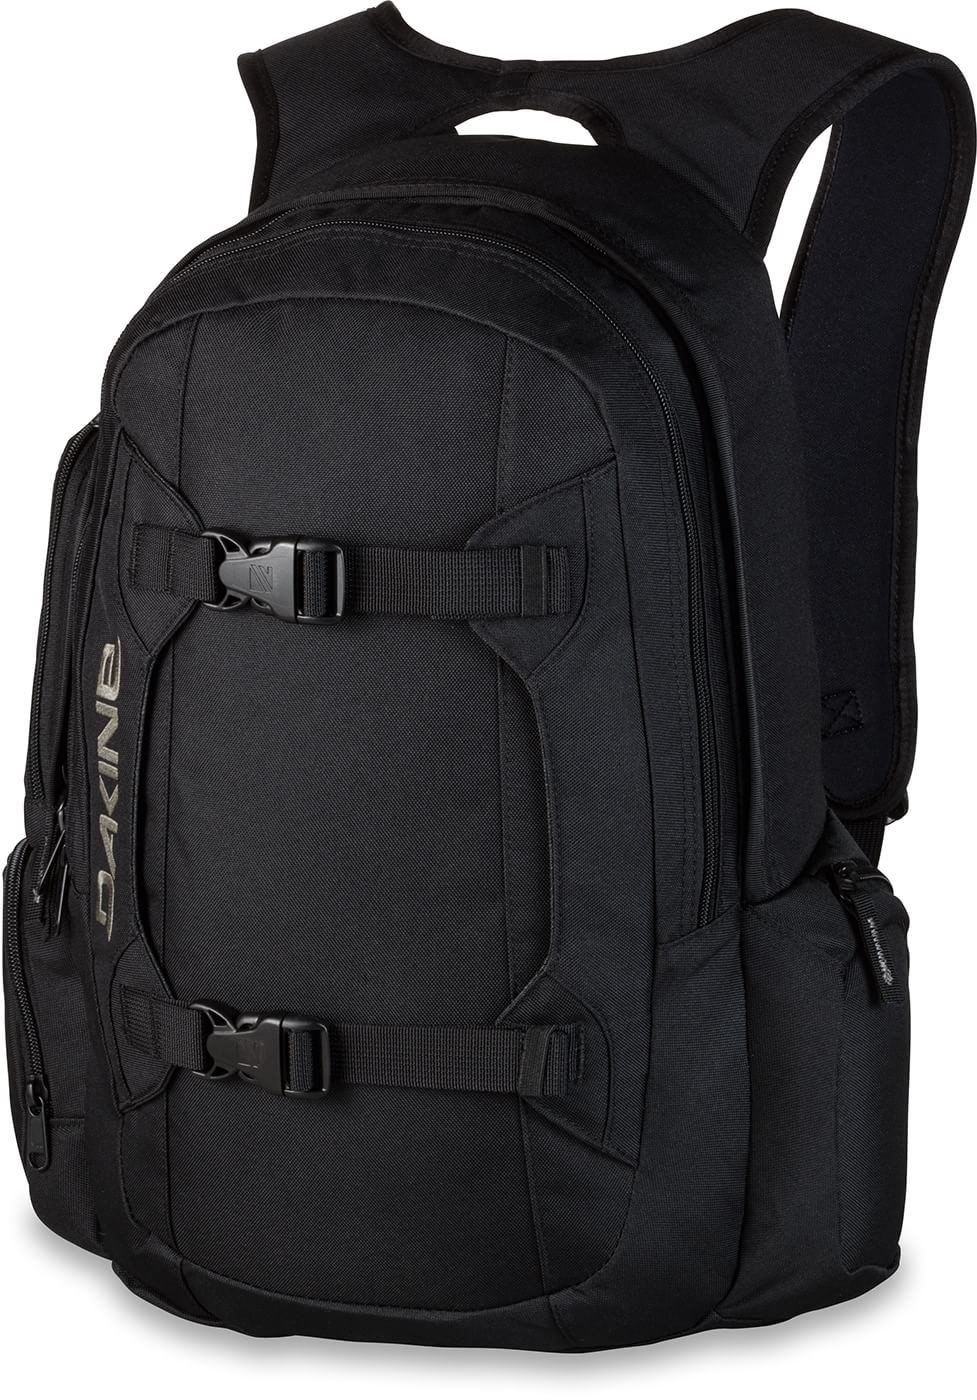 DAKINE Mission Backpack - Free Shipping